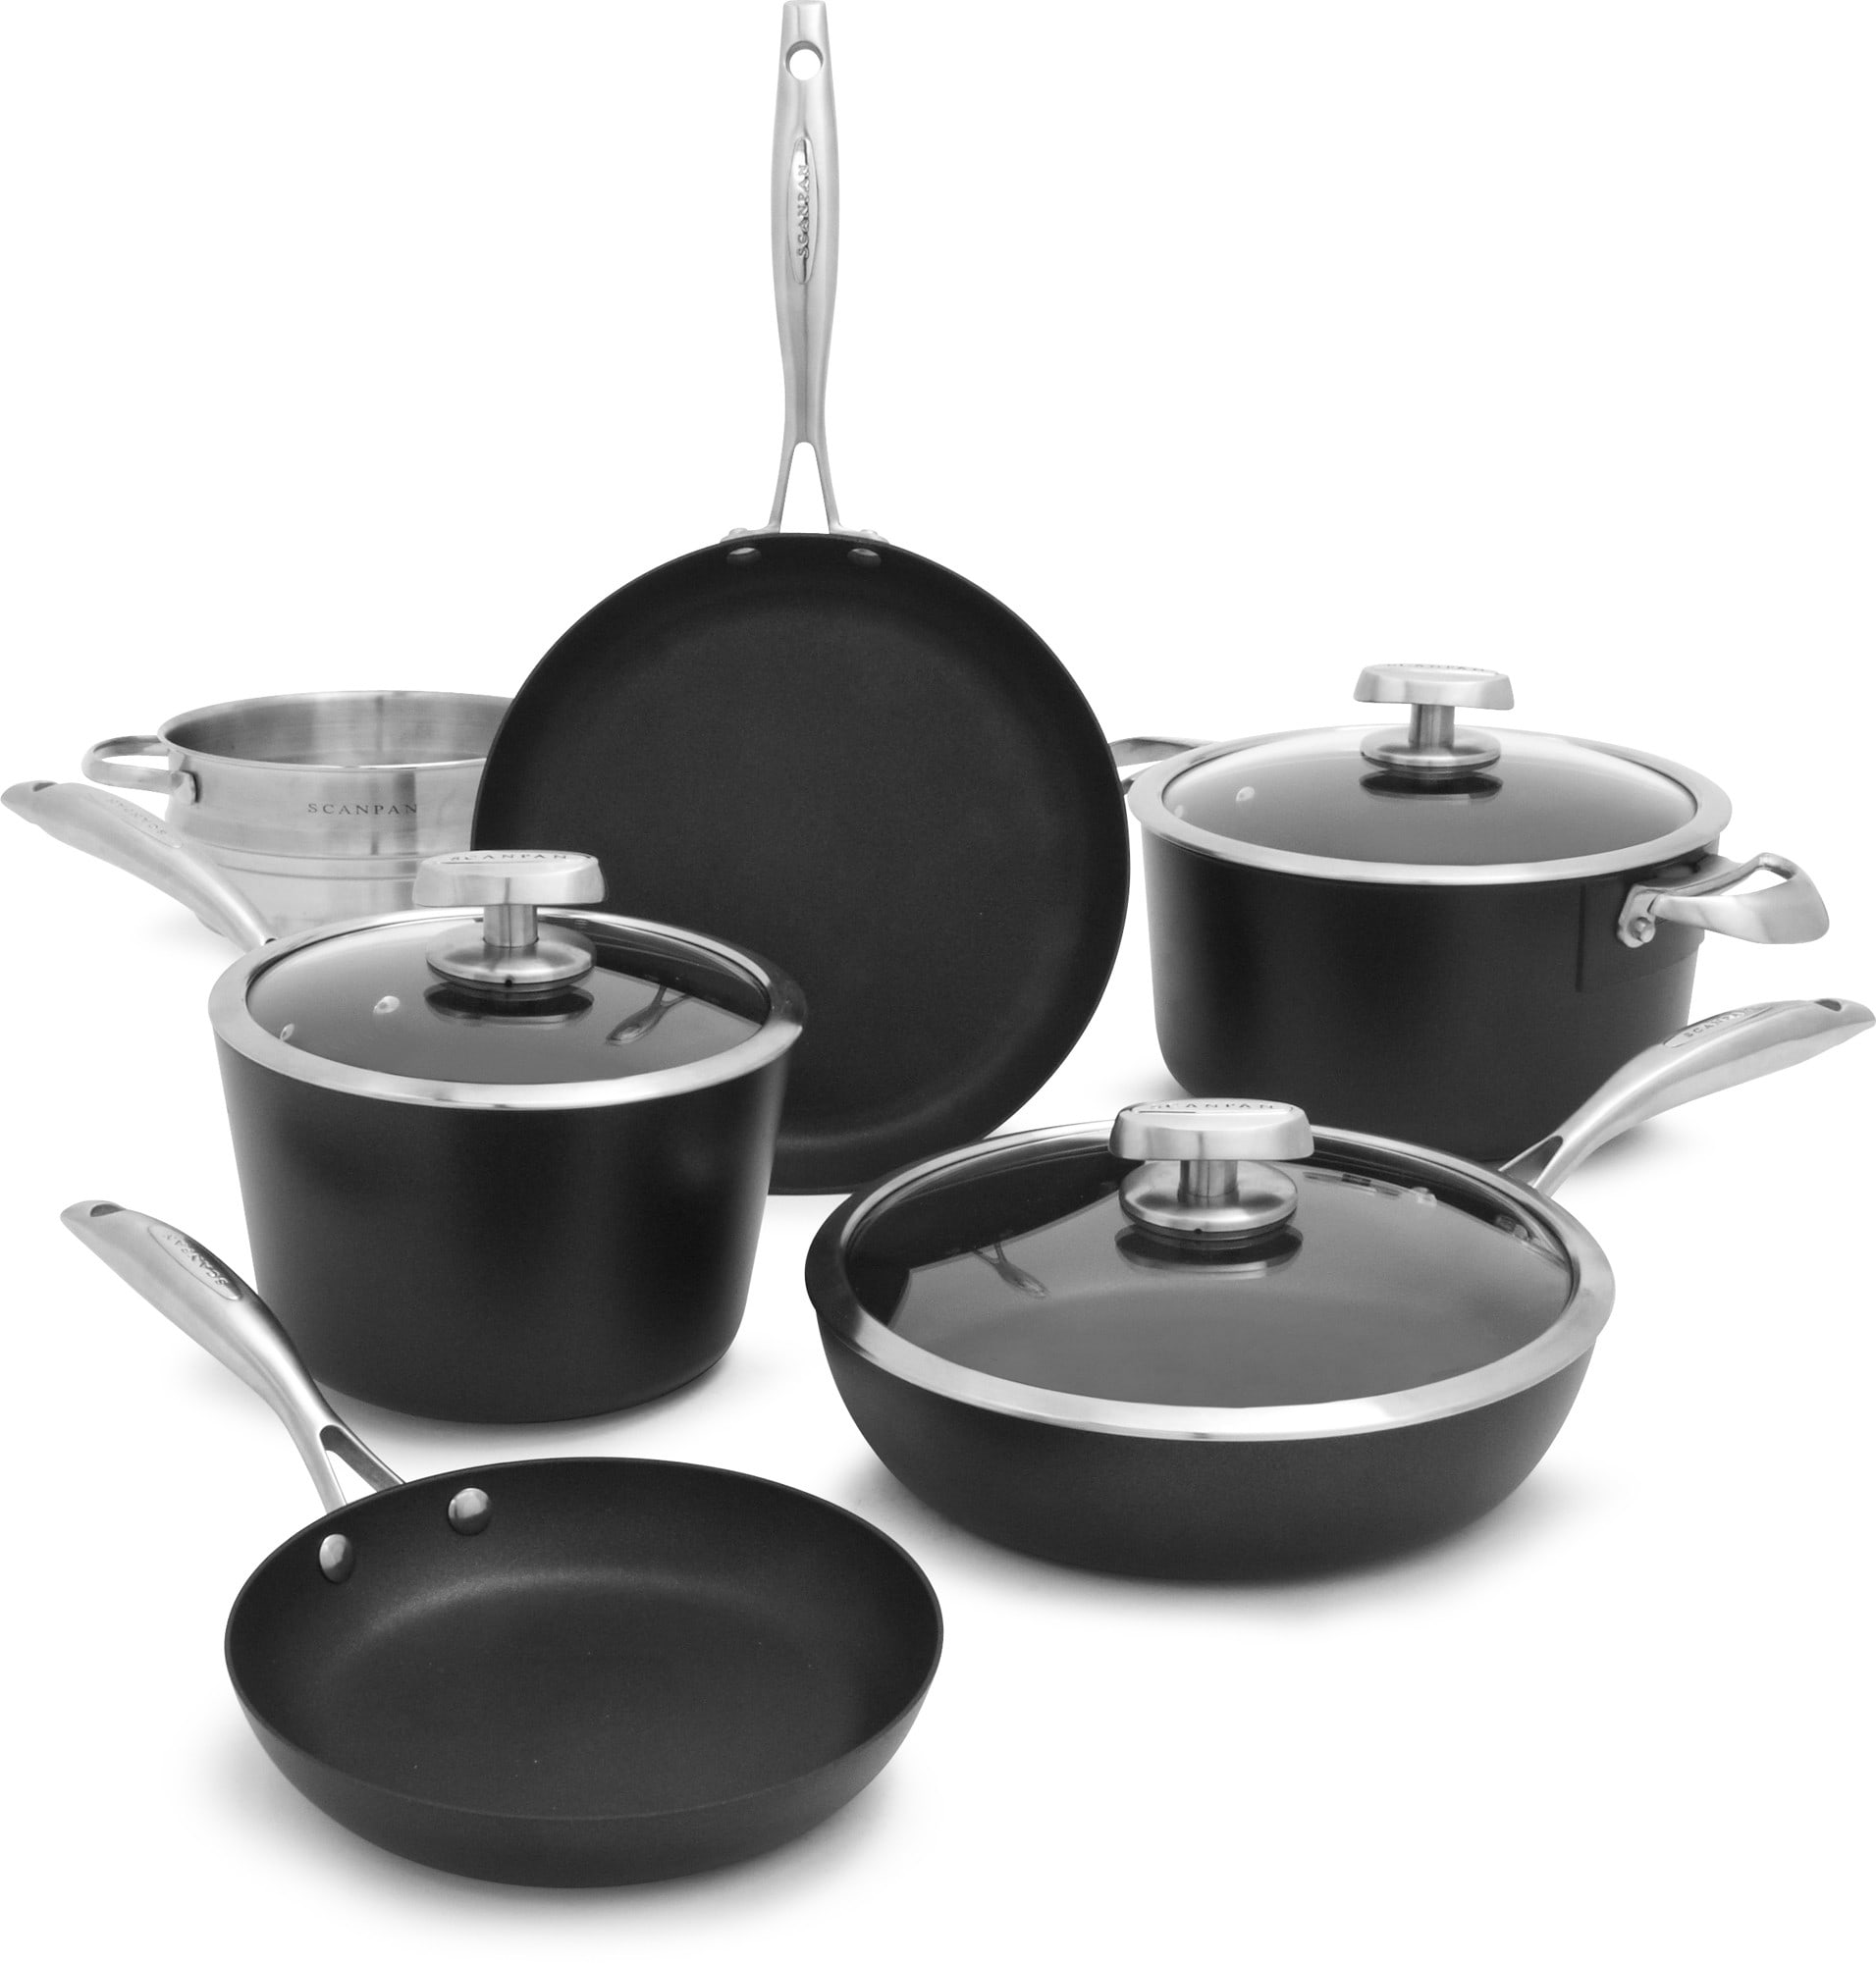 Scanpan 68000900 Pro Iq 9 Piece Cookware Set With Ceramic